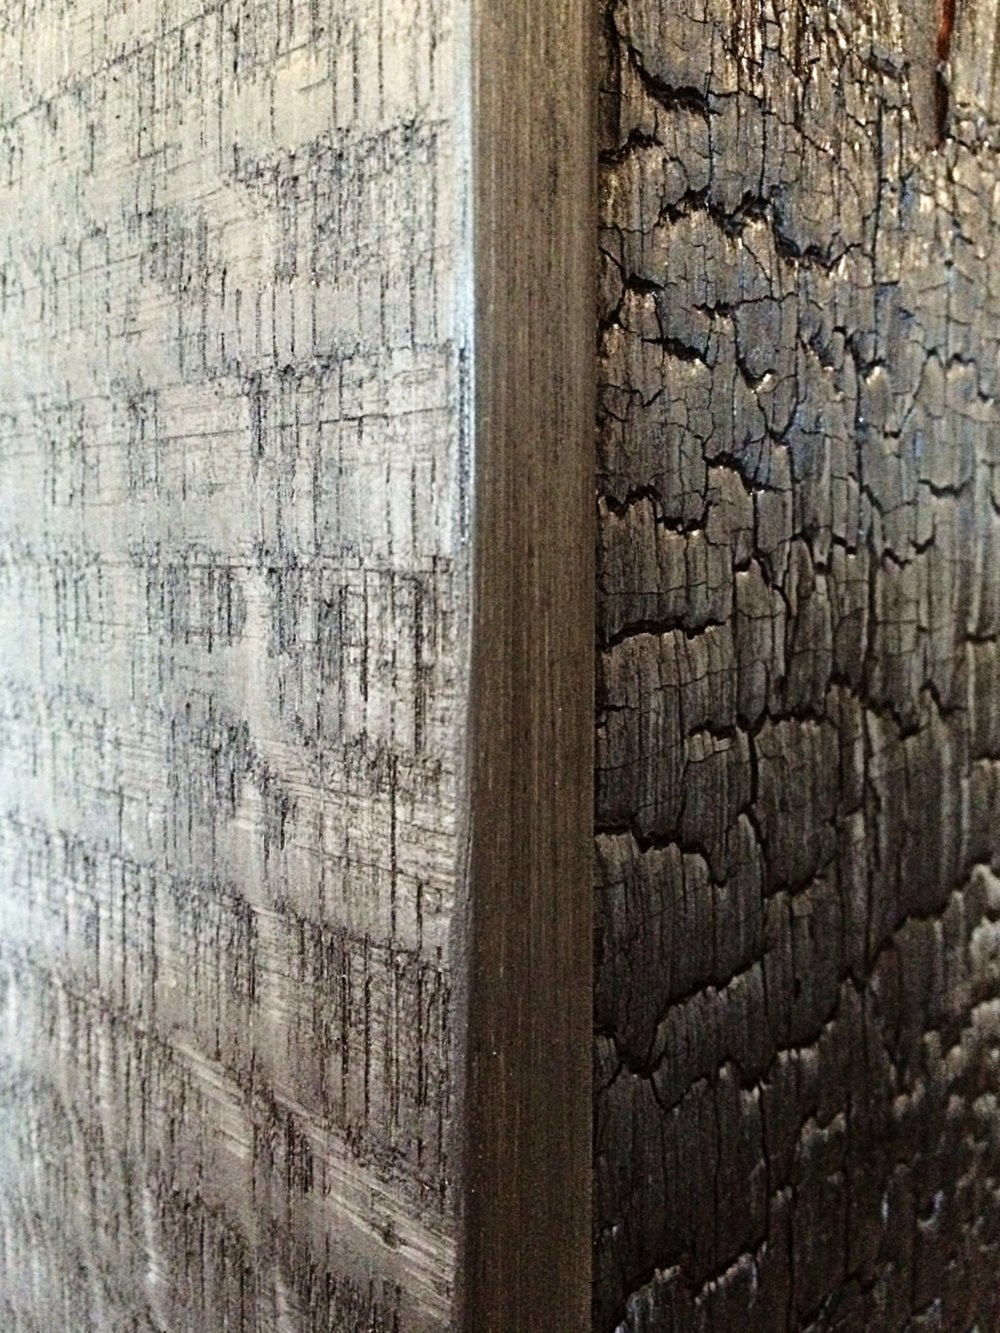 Breakers Habachy Designs Eutree Forest Free Shou Sugi Ban charred dark wood board frames